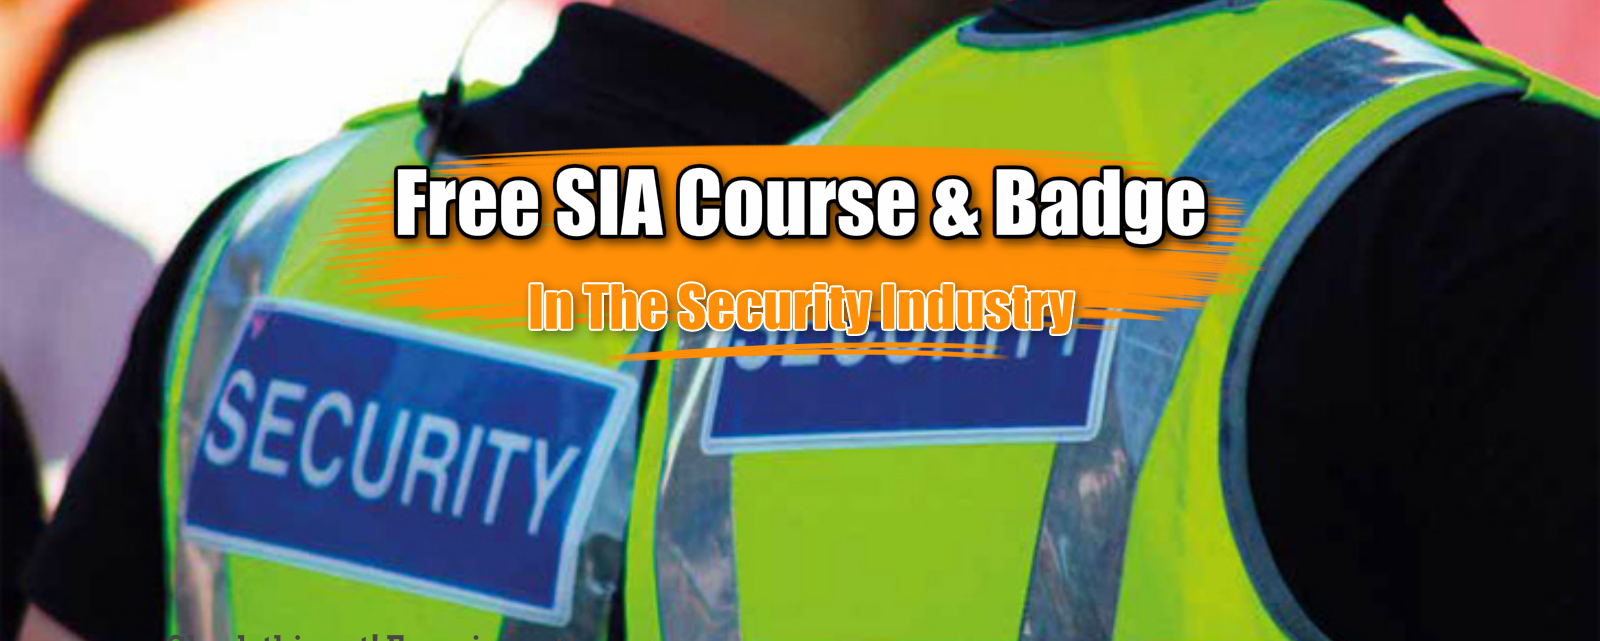 Free SIA course & Badge